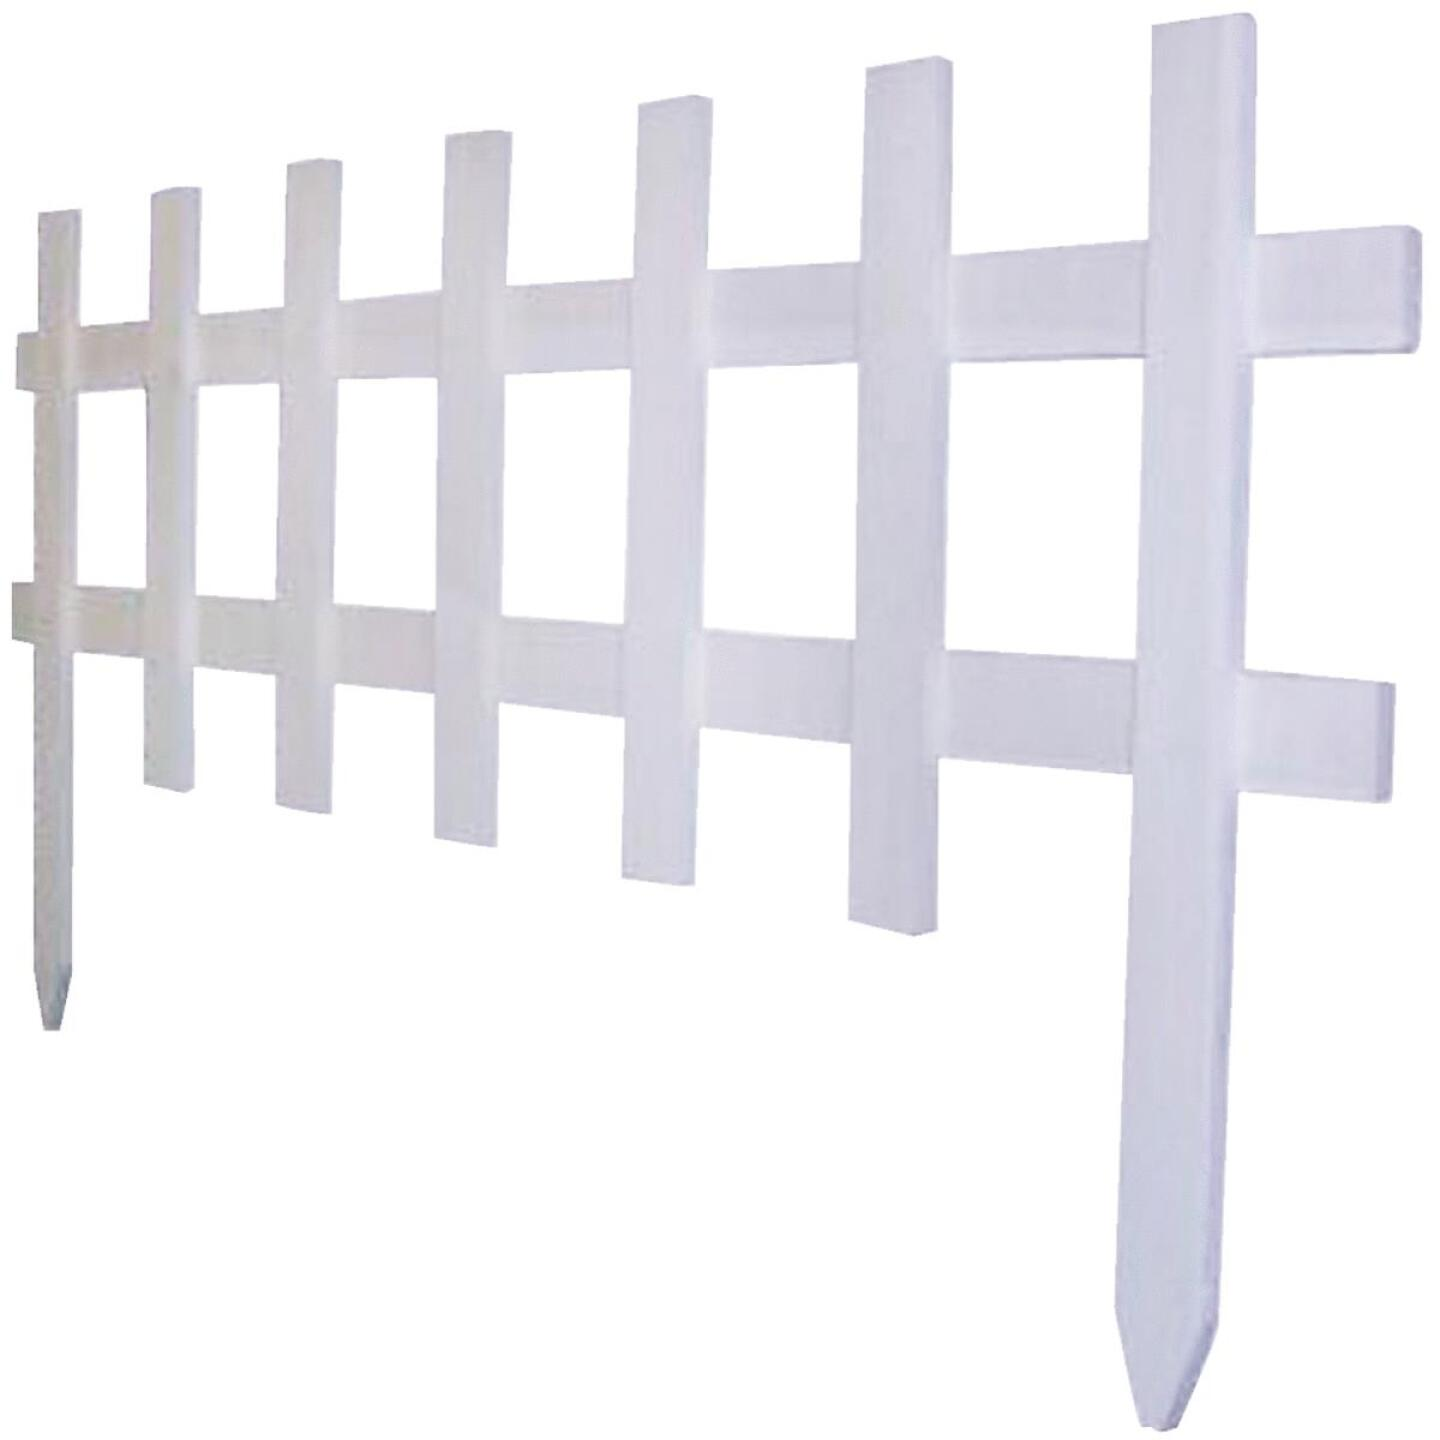 Greenes Fence 18 In. H x 3 Ft. L Wood Decorative Border Fence Image 1